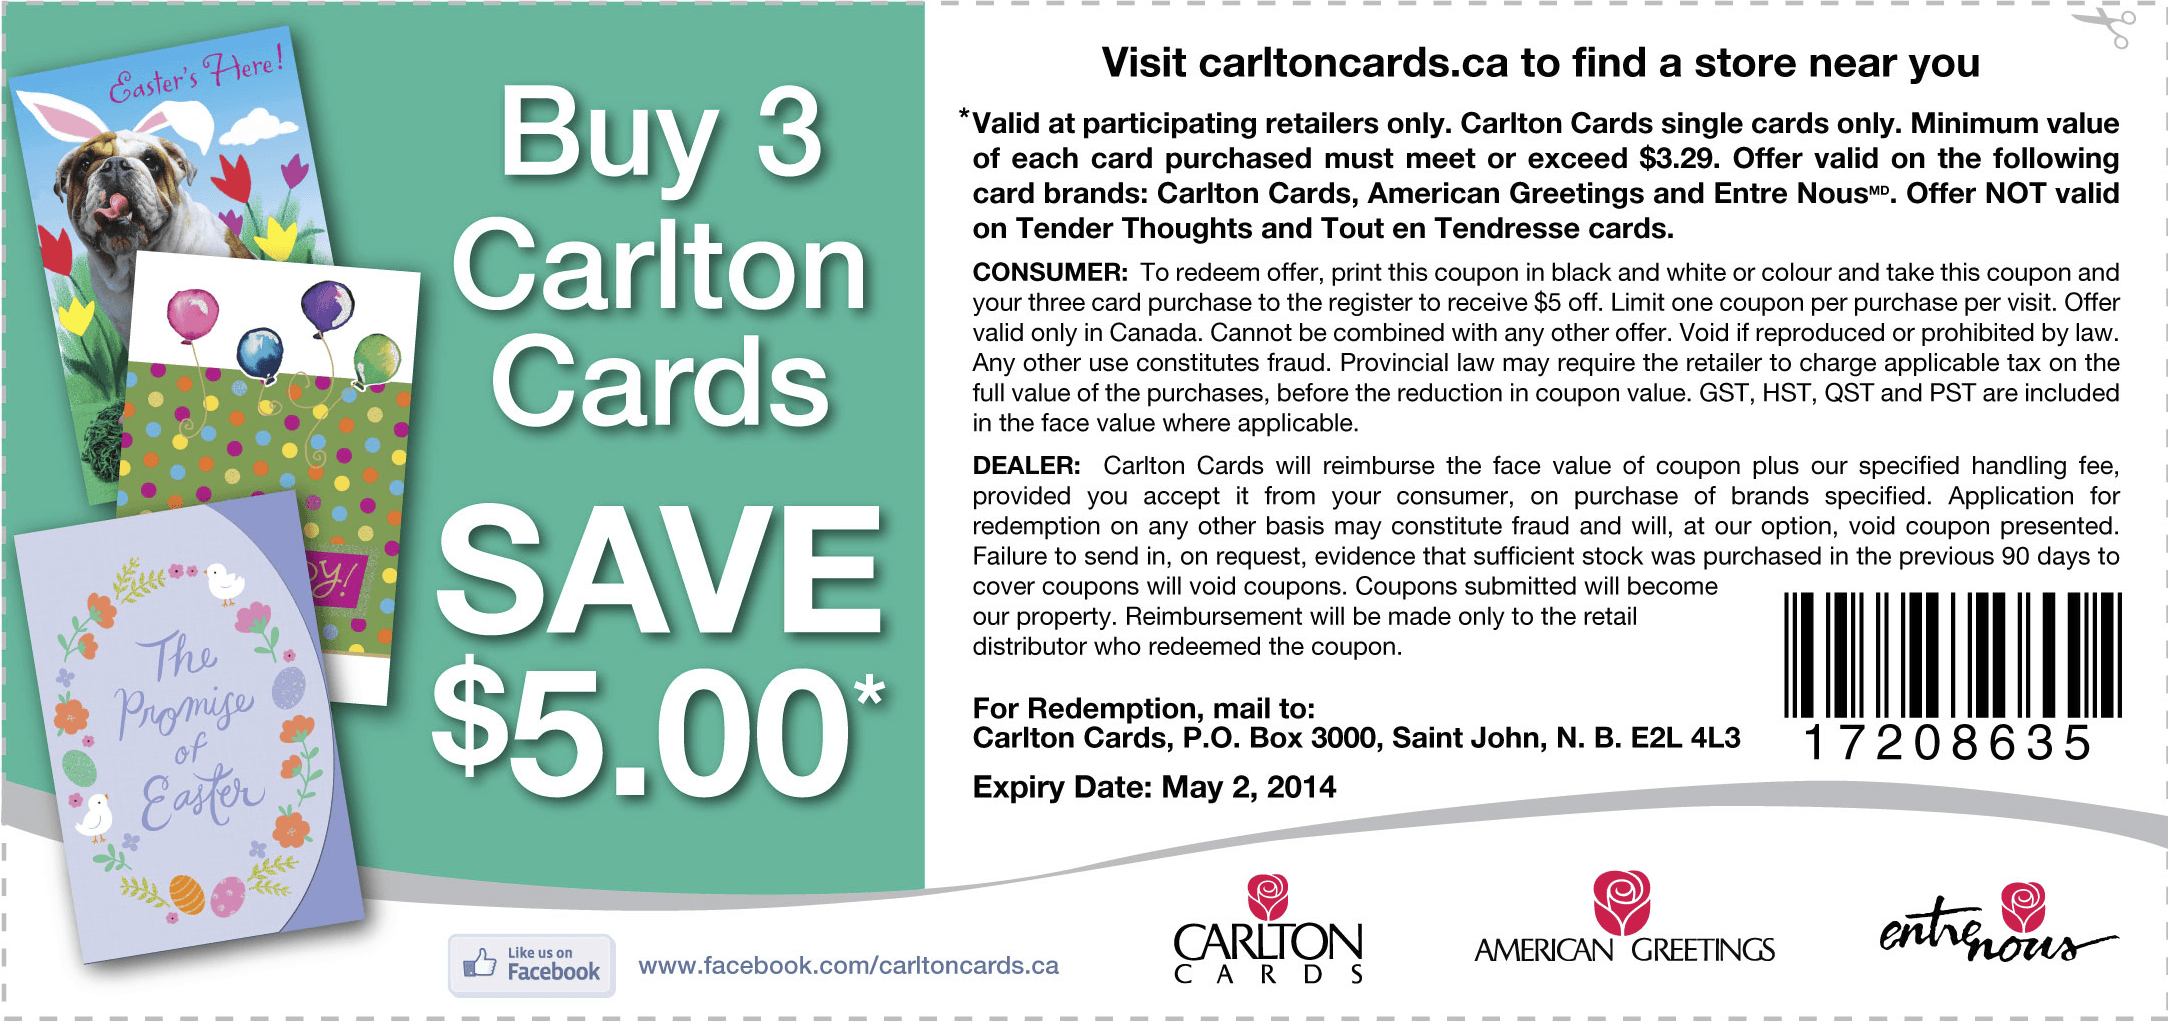 Carlton cards canada coupons but 3 cards save 5 canadian carlton cards coupon kristyandbryce Choice Image